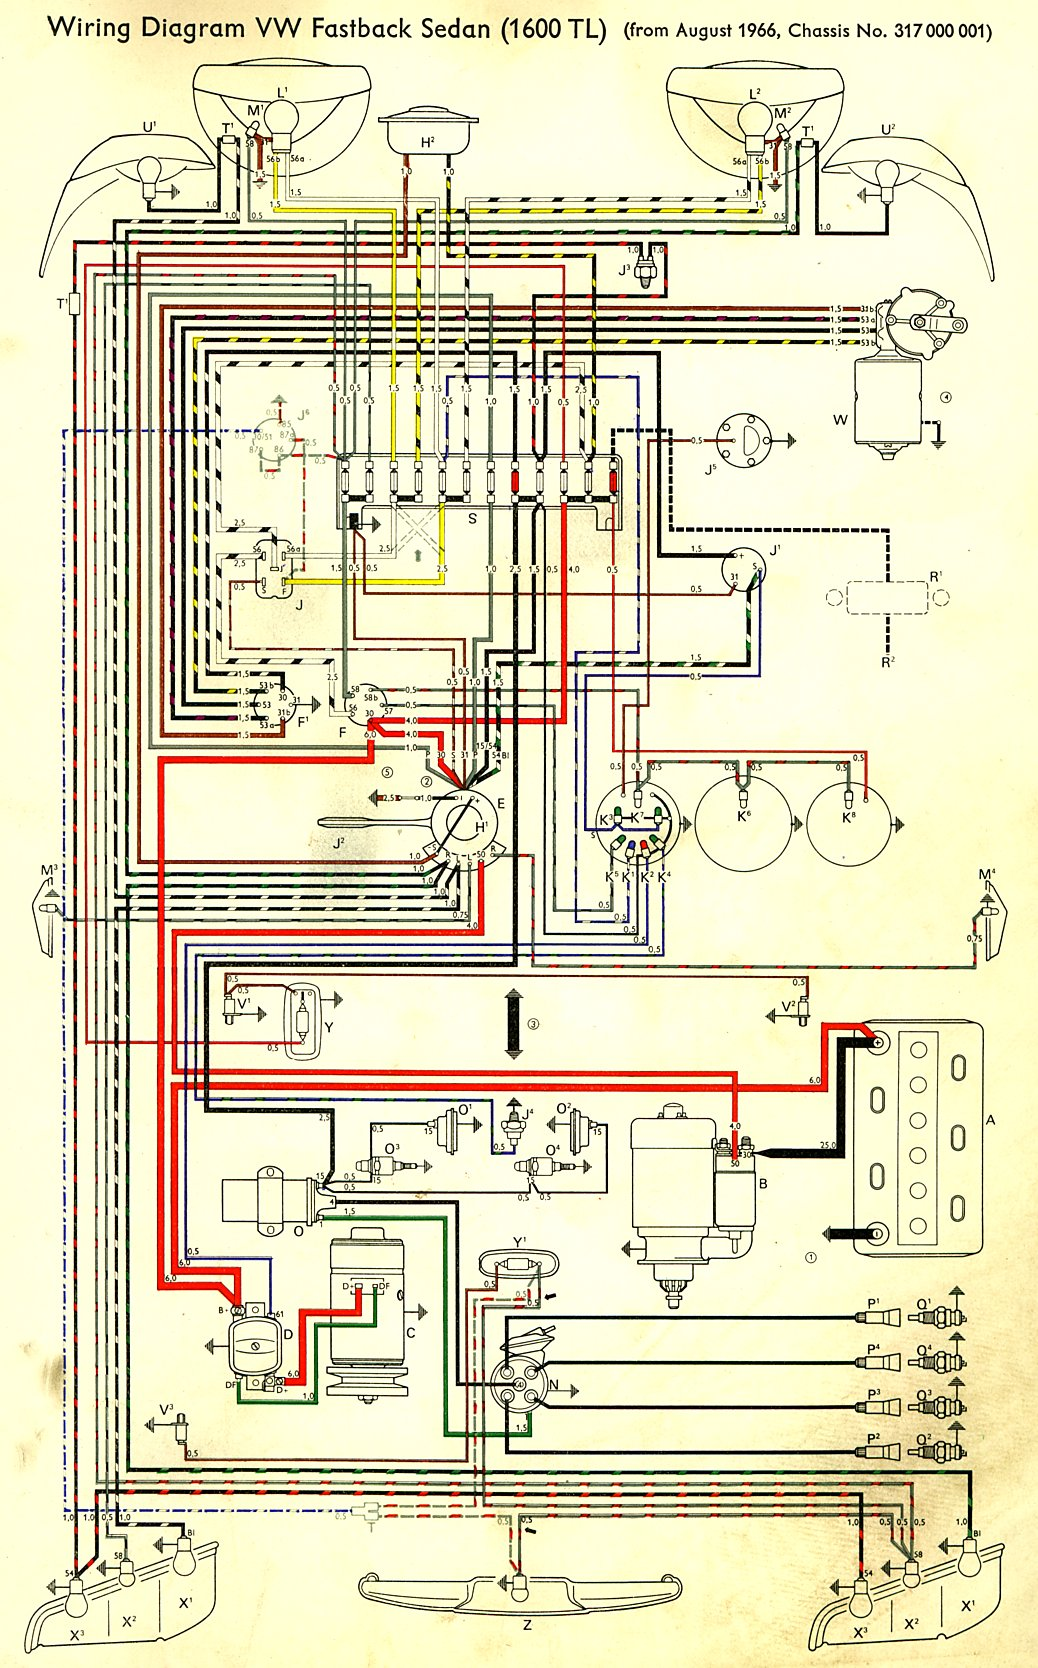 Type 3 Wiring Diagrams House Codes